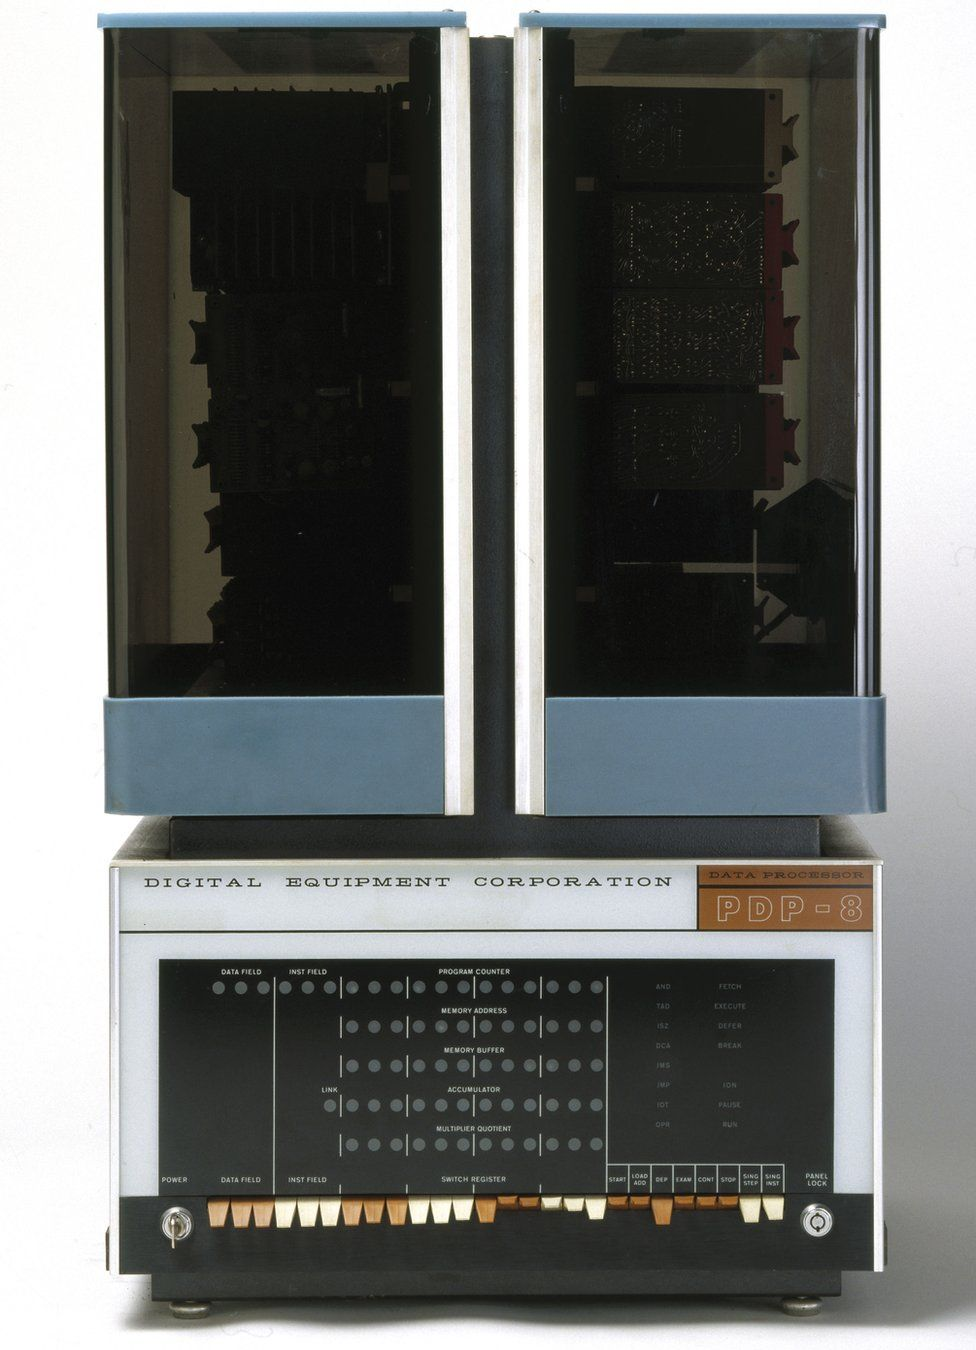 The PDP-8, the first minicomputer, made by DEC